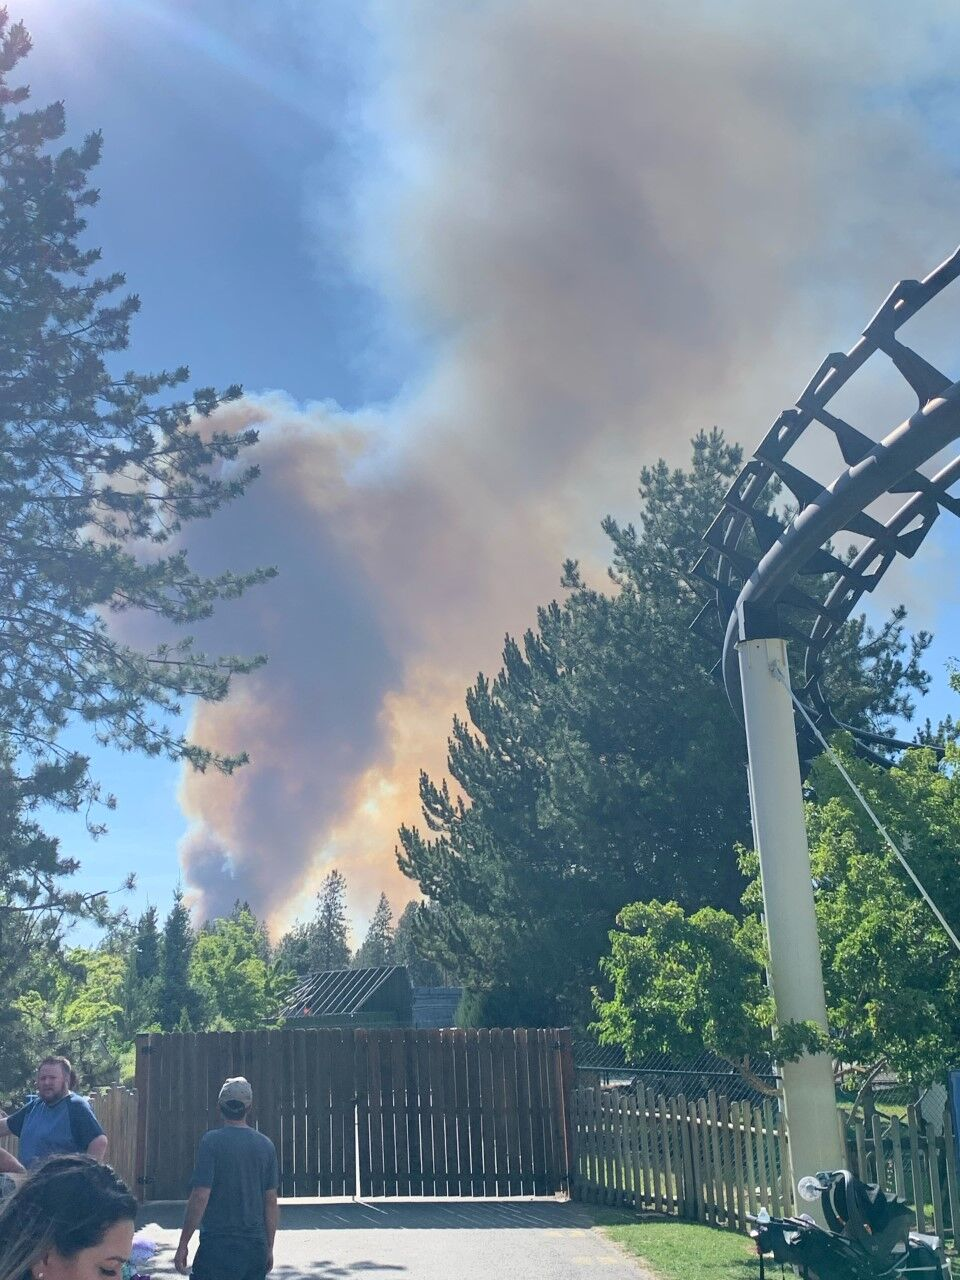 silverwood fire view from park